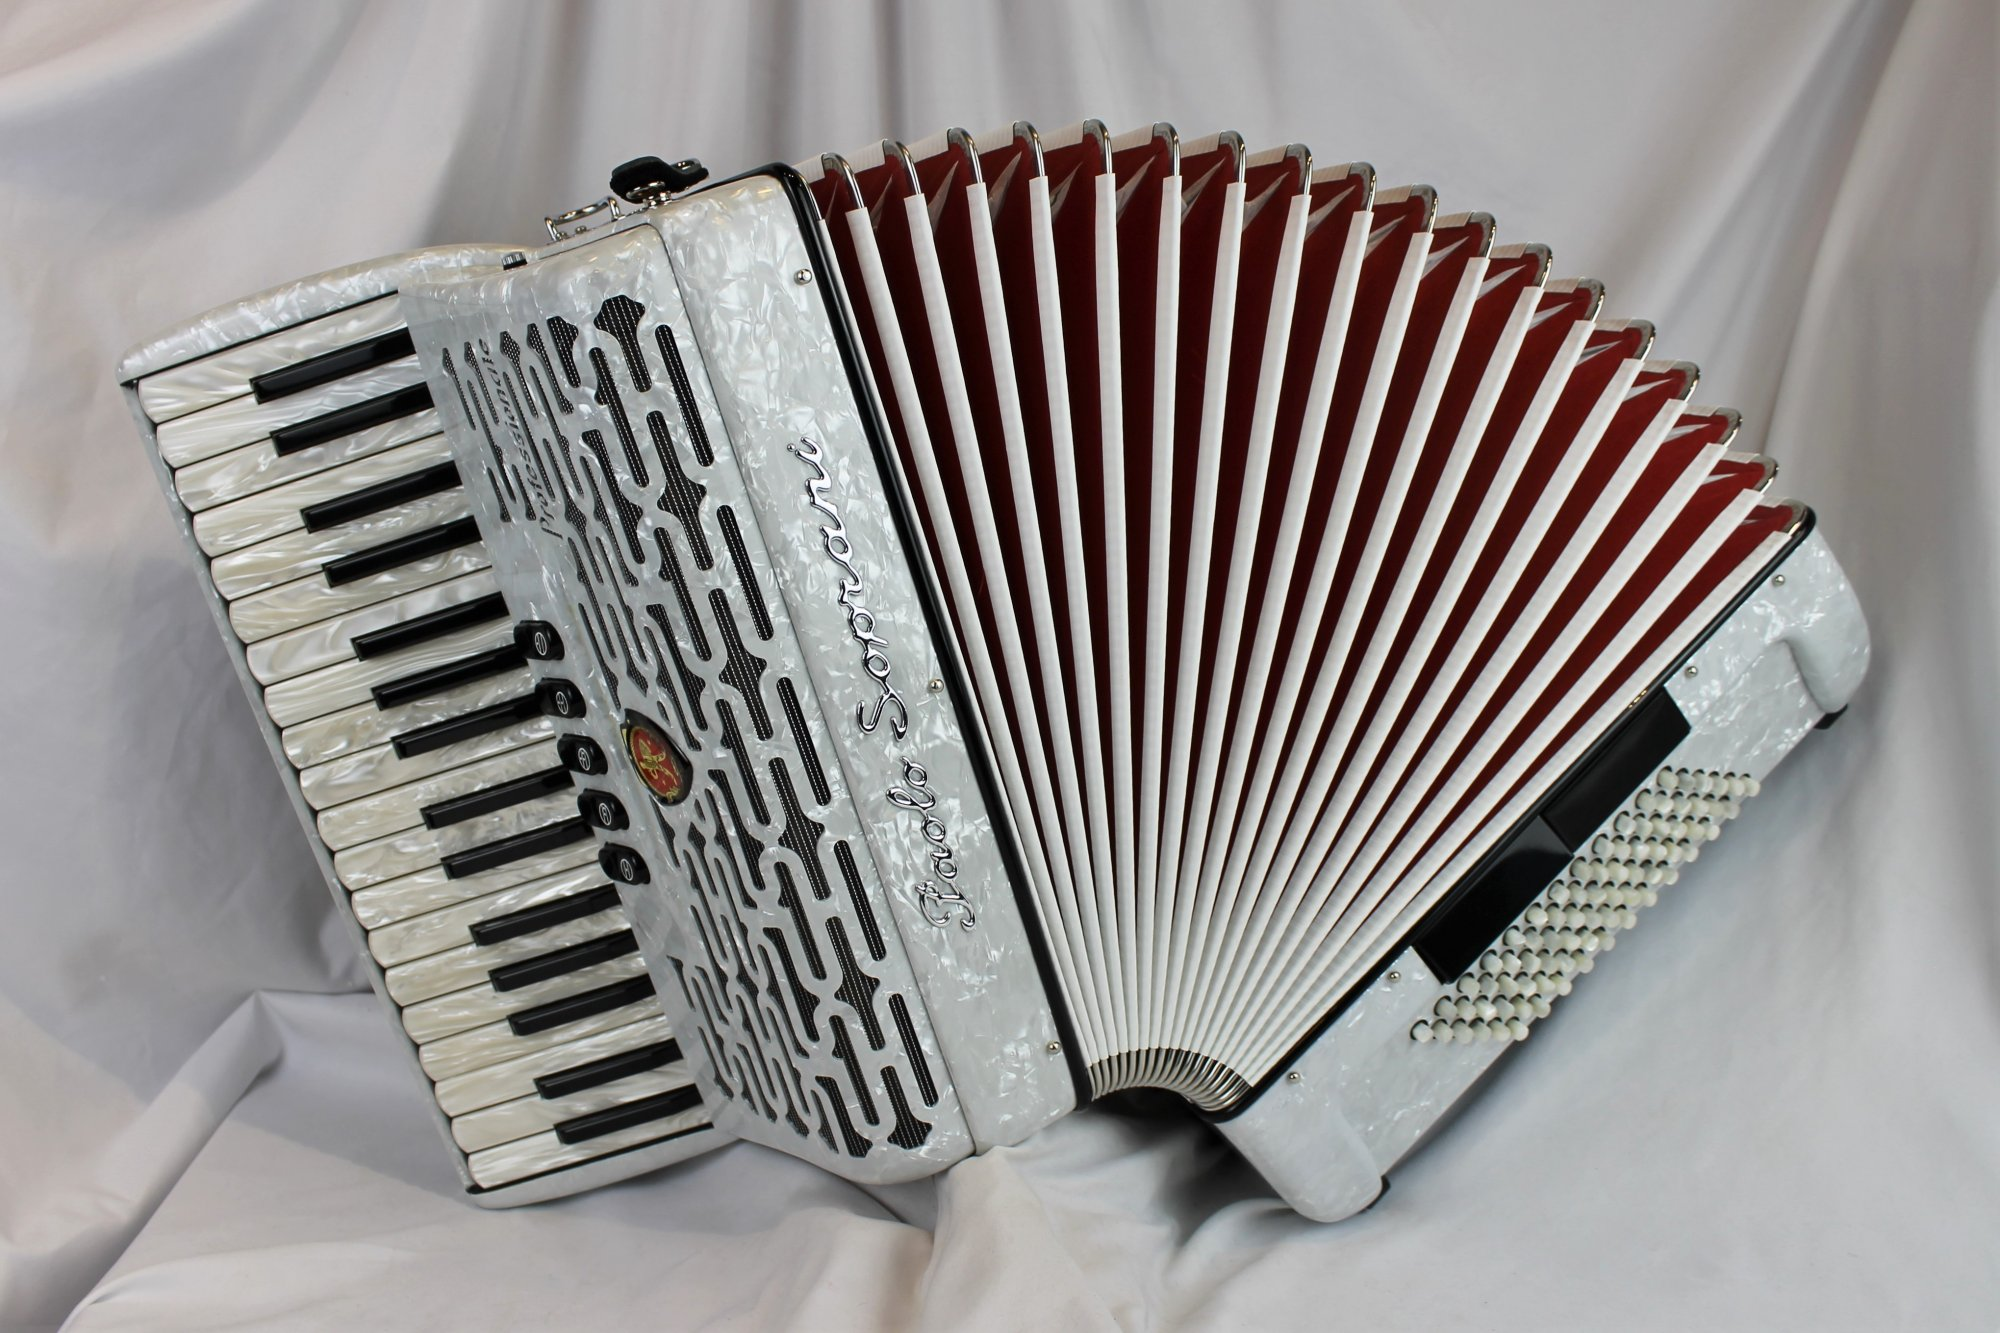 NEW White Paolo Soprani Professionale Piano Accordion LMM 34 72